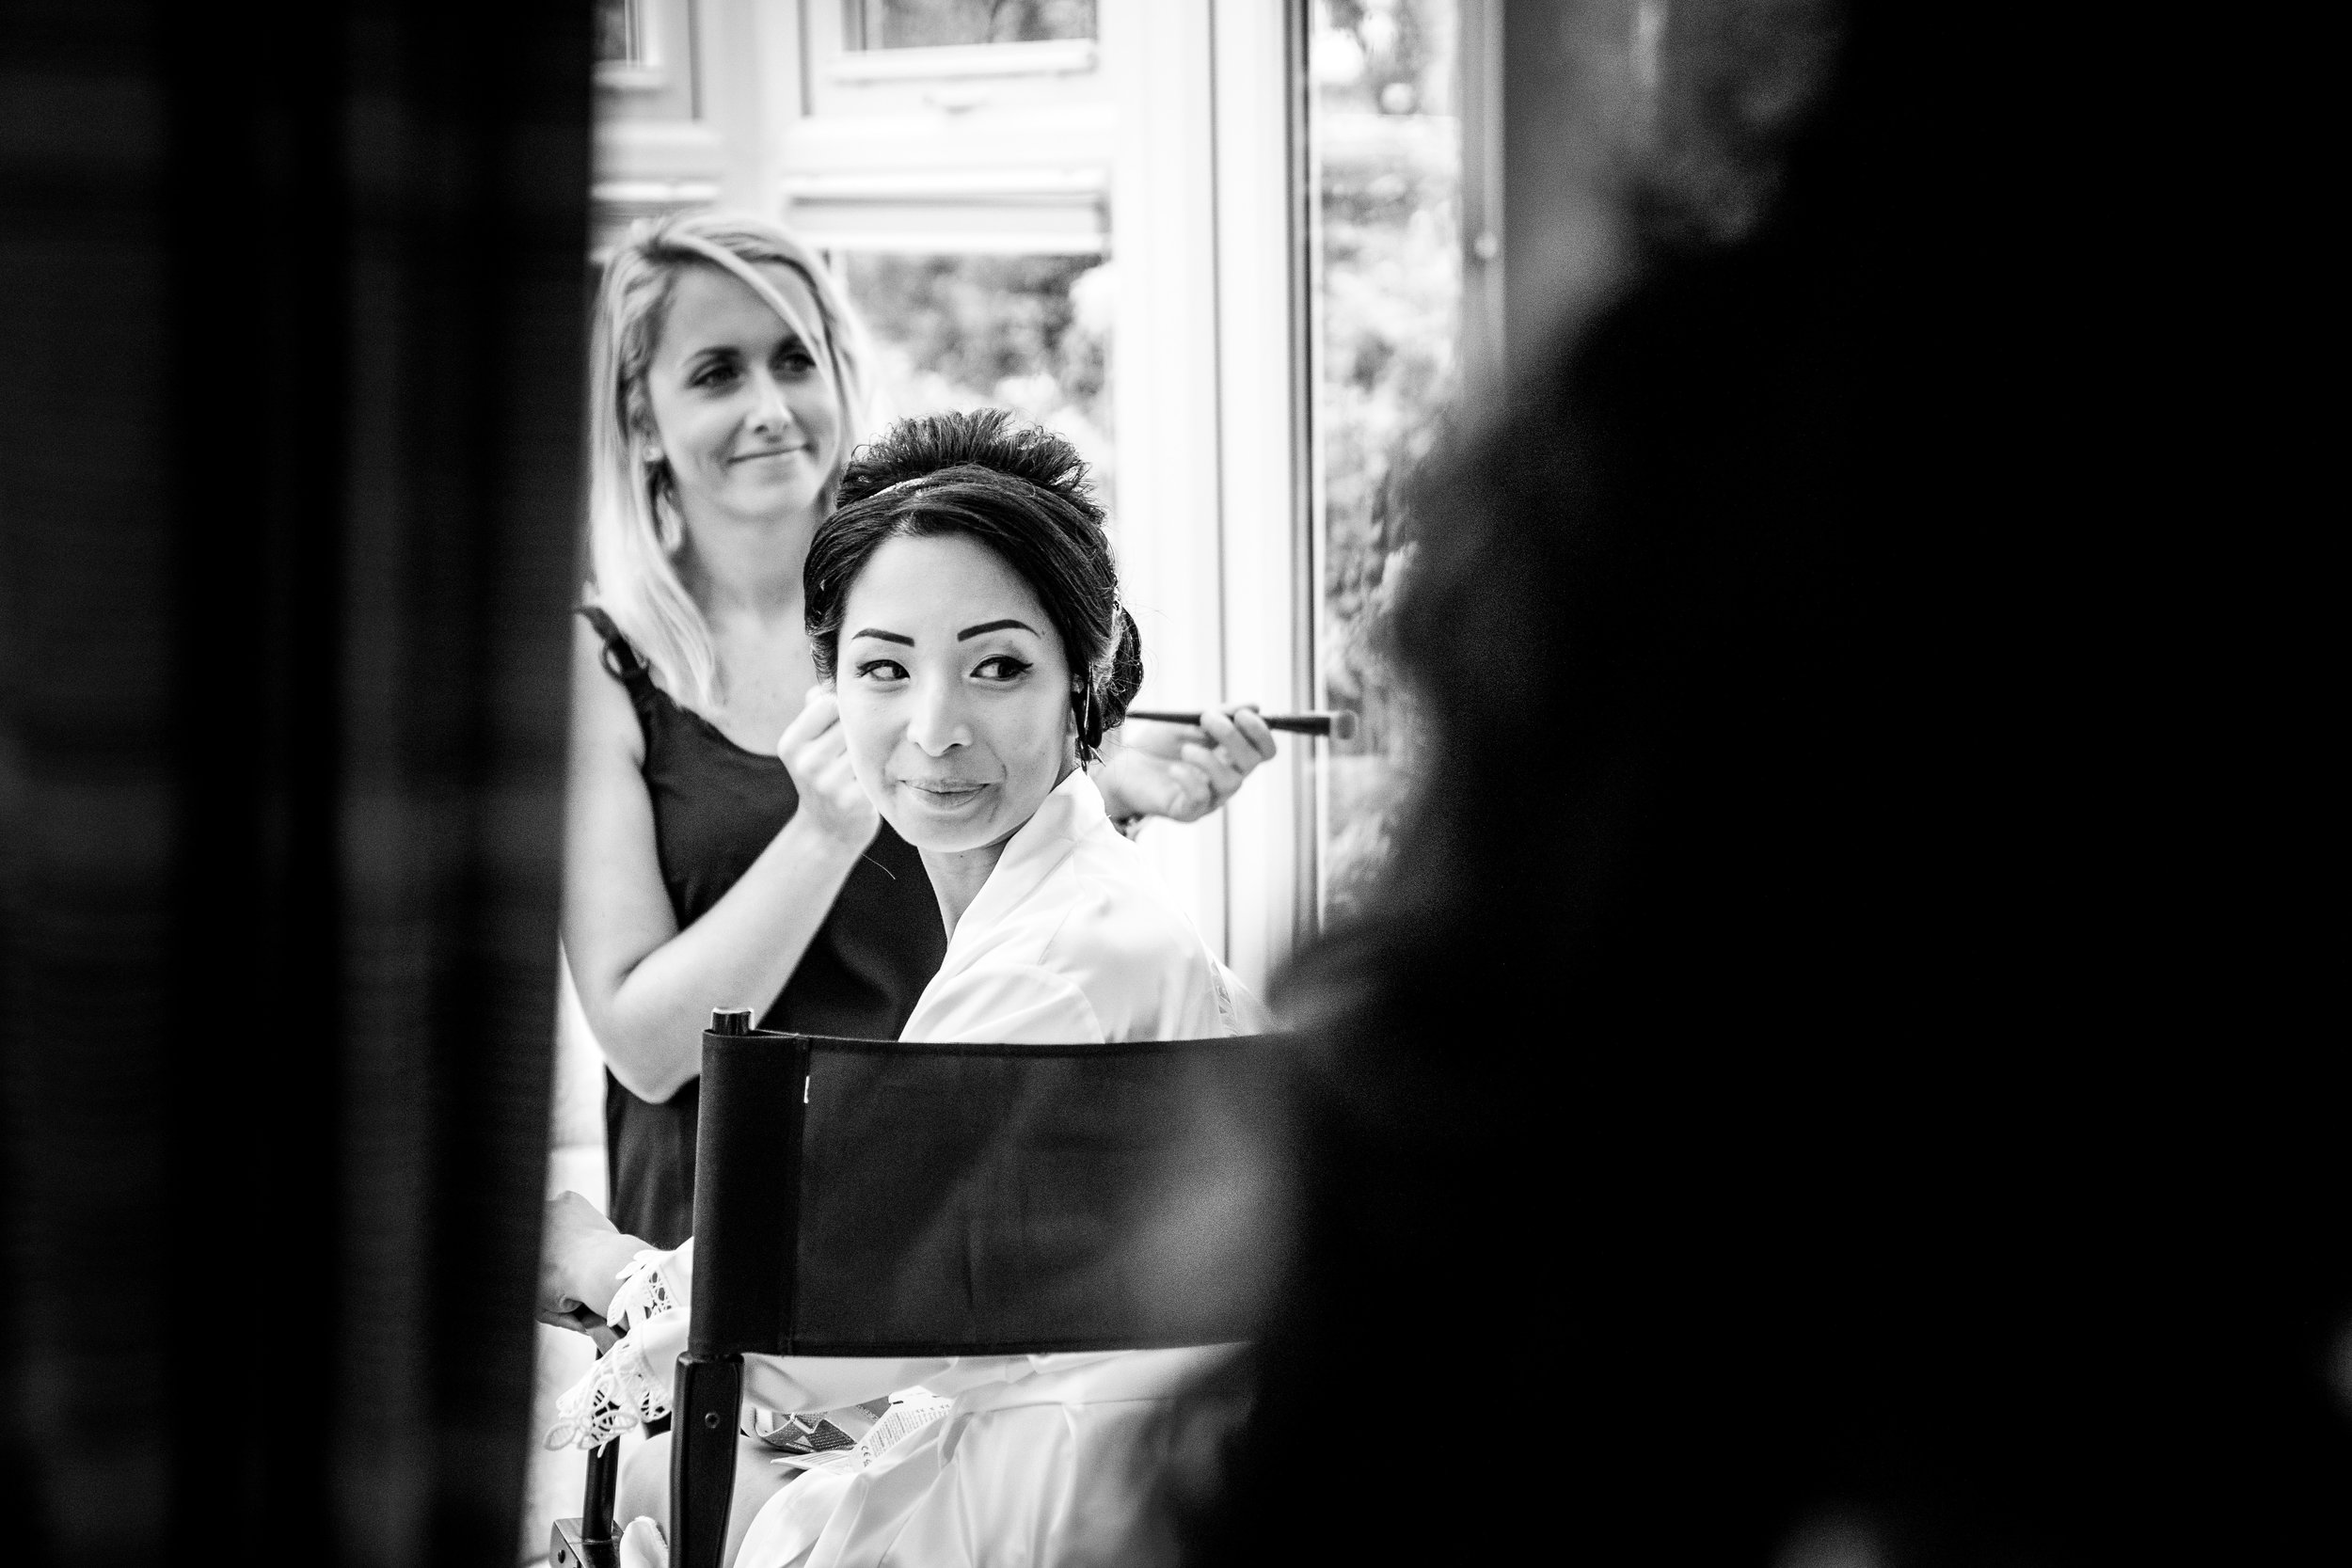 bedfordshire-london-wedding-photographer-videographer-14